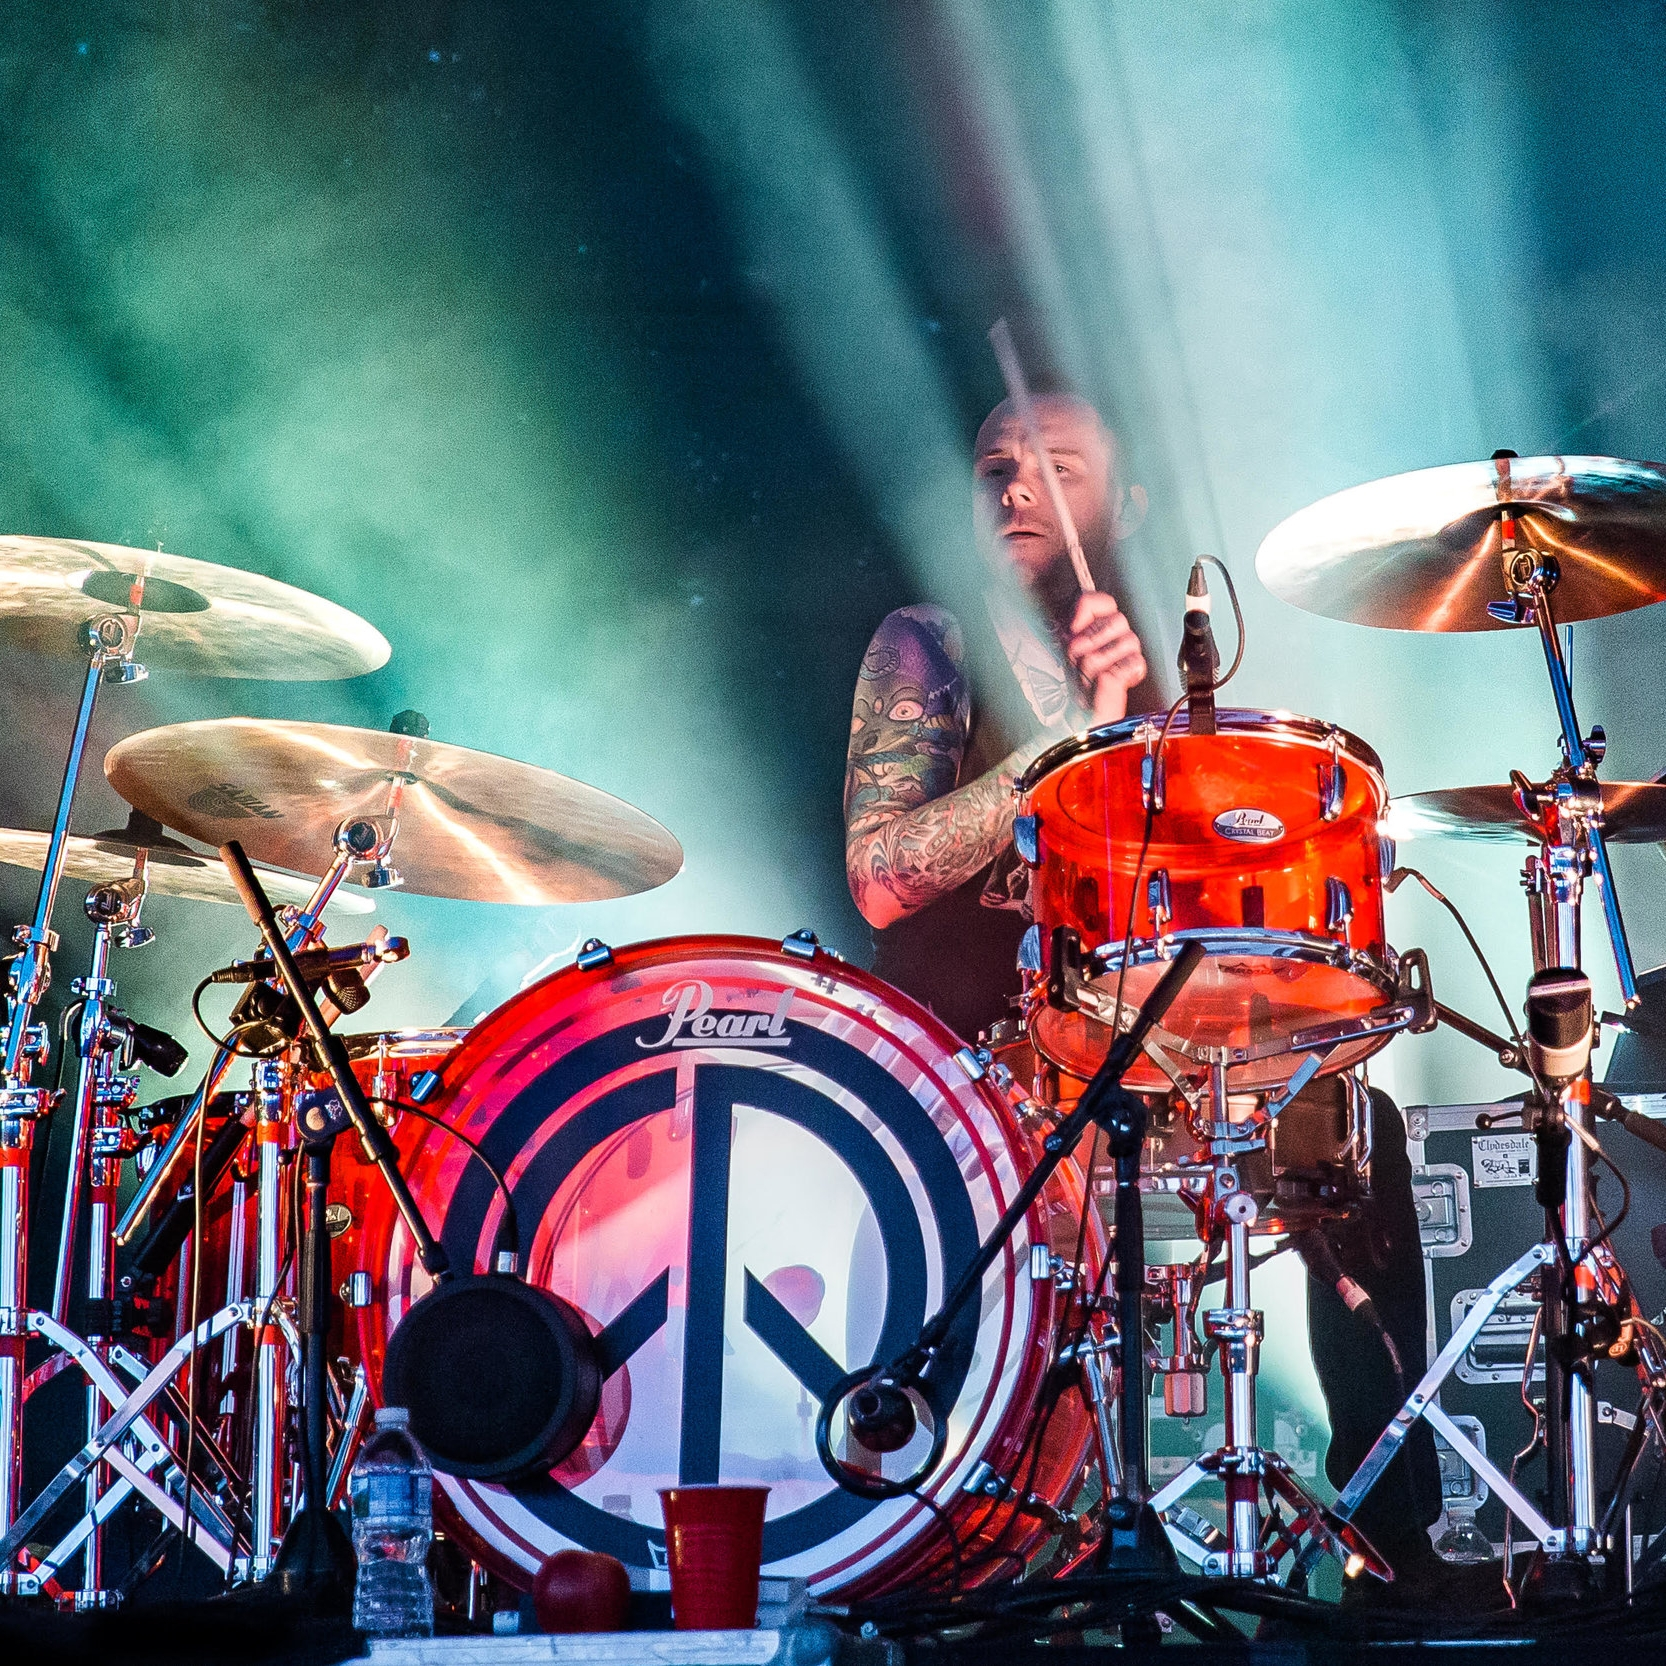 JASON PIERCE: (drummer) Our Lady Peace, Paramore, Justin Bieber